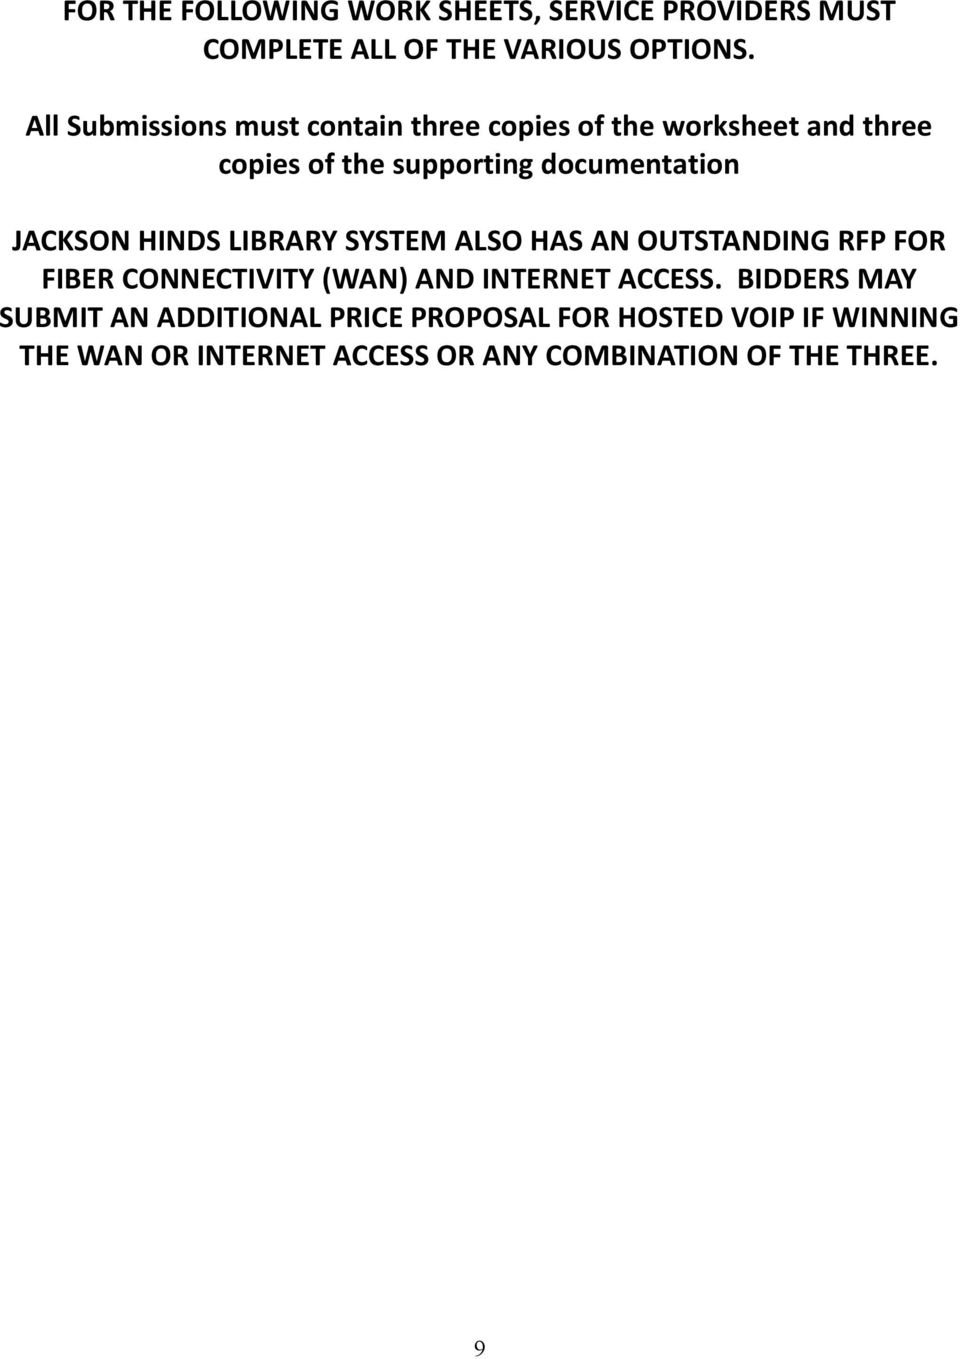 JACKSON HINDS LIBRARY SYSTEM ALSO HAS AN OUTSTANDING RFP FOR FIBER CONNECTIVITY (WAN) AND INTERNET ACCESS.